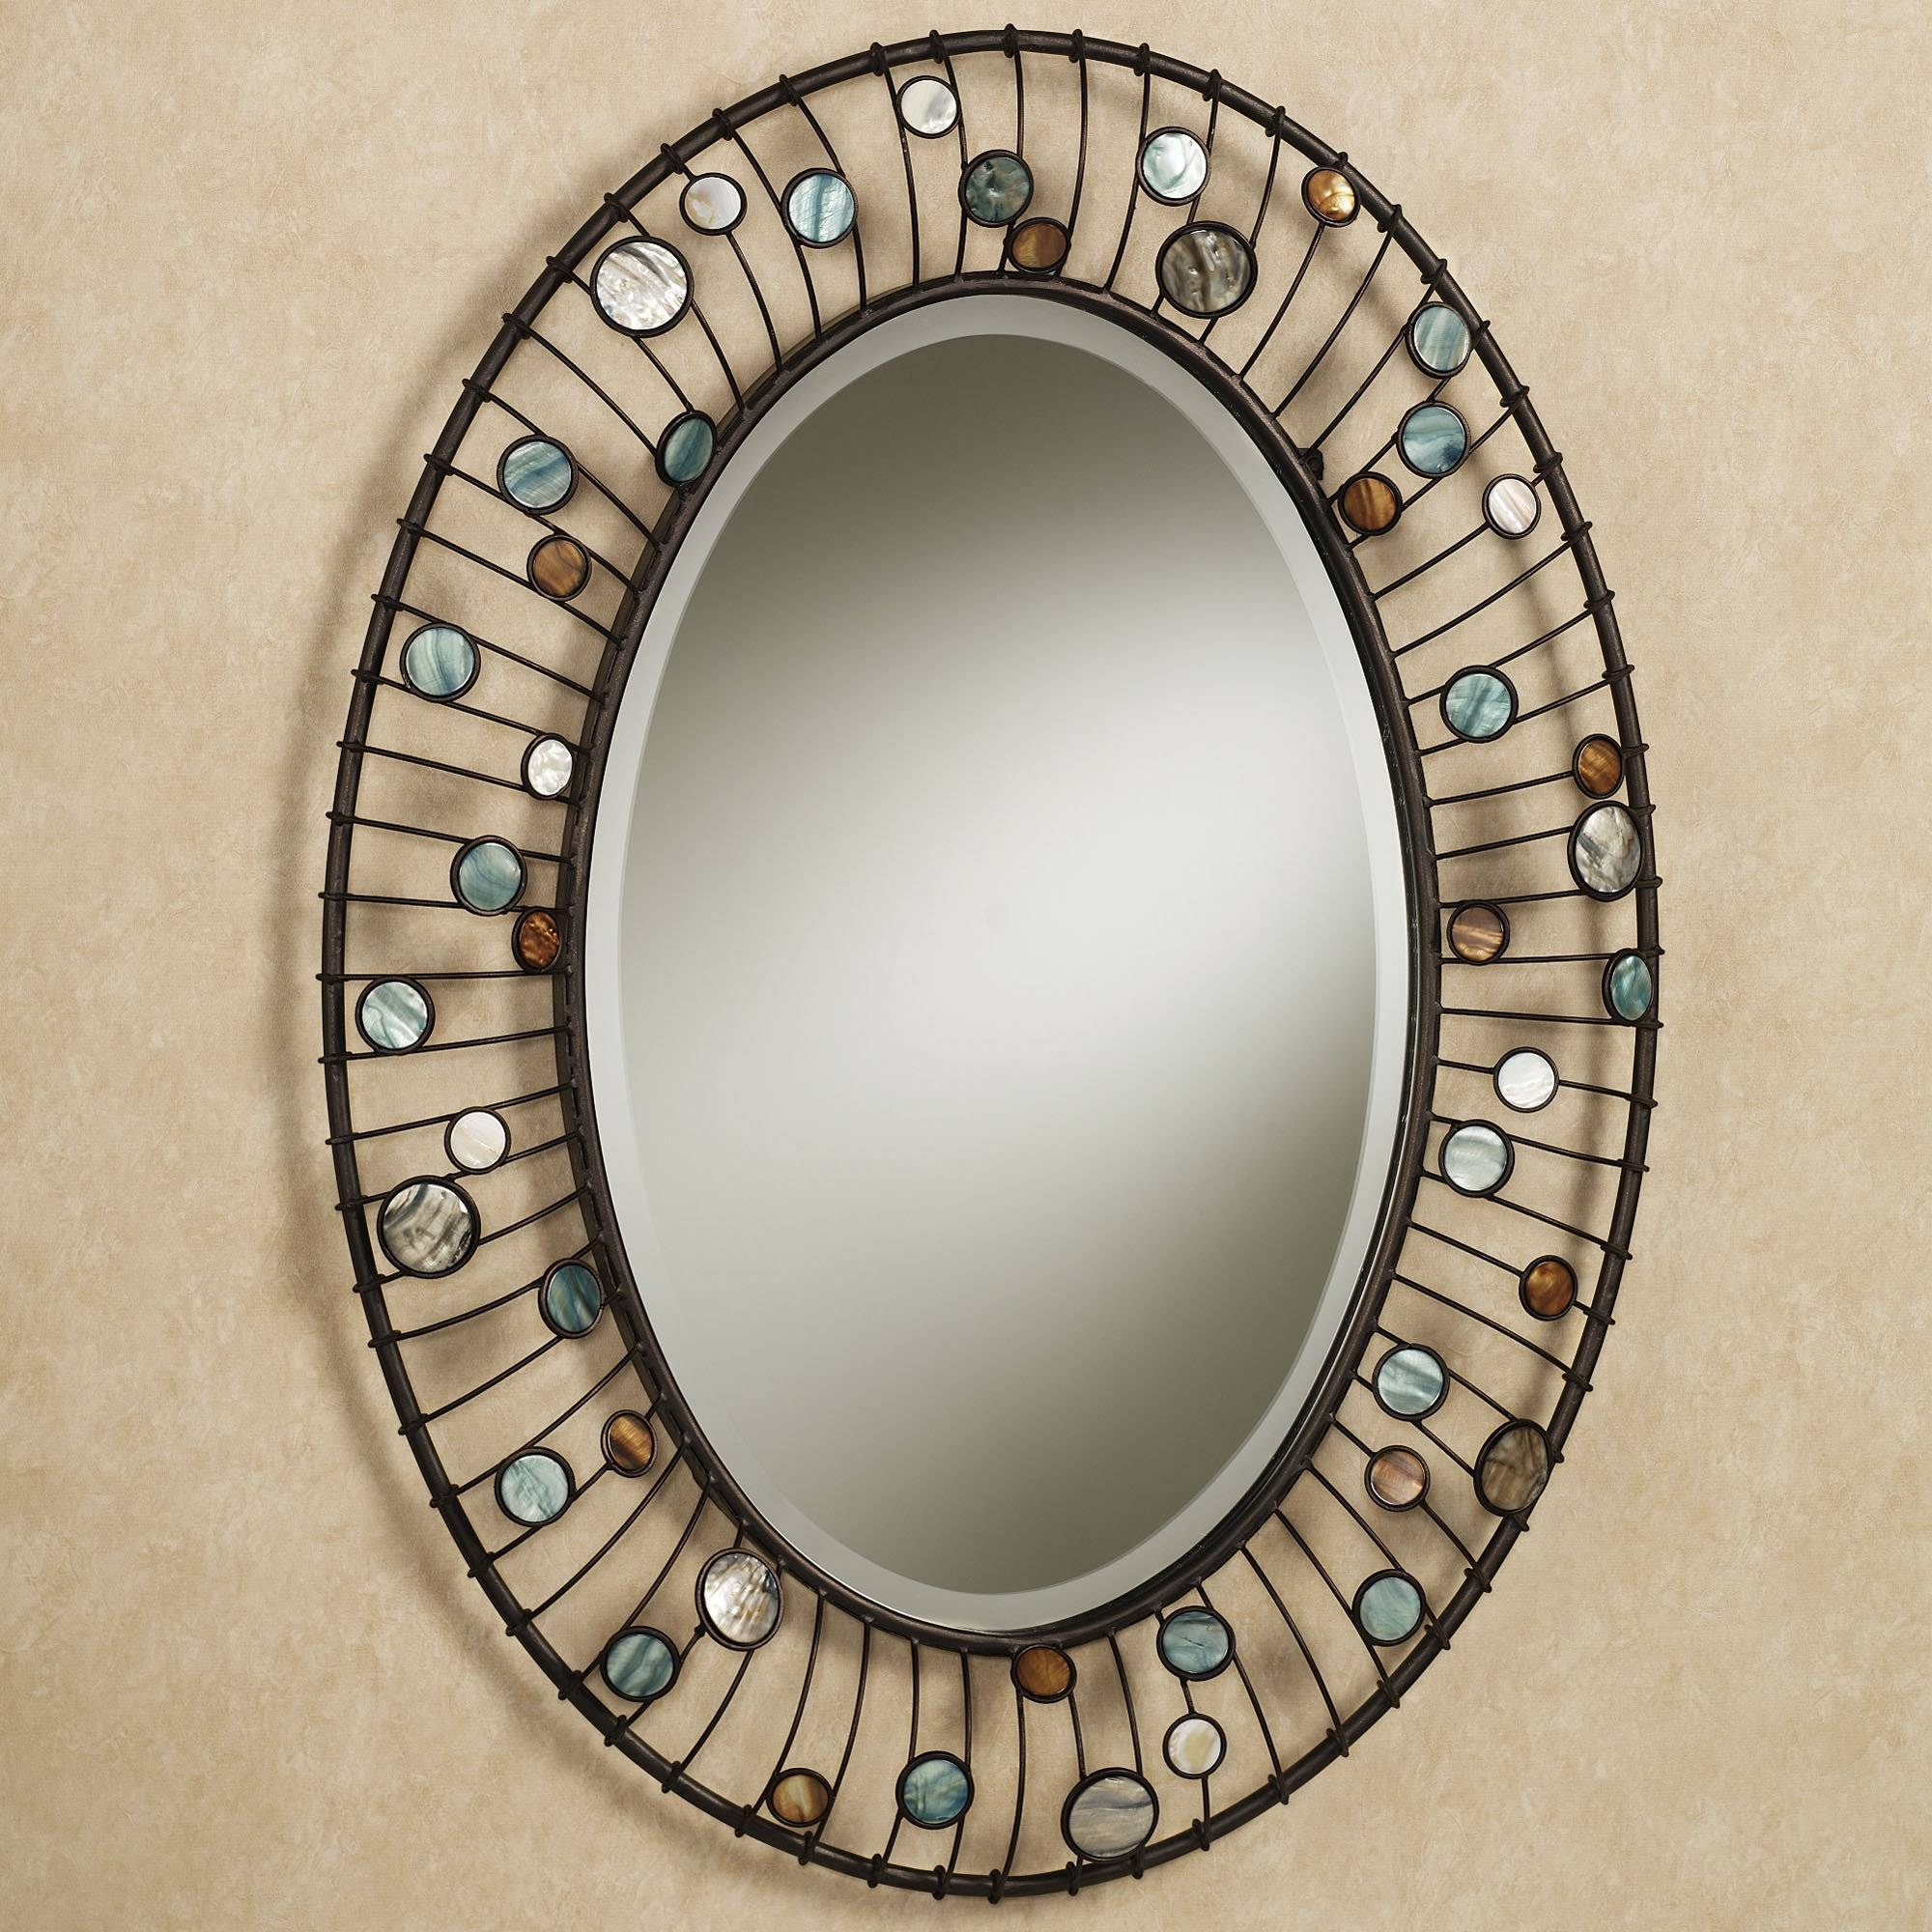 Wonderful Oval Shape Entryway Wall Mirrors With Iron Frames As in Unique Wall Mirrors (Image 25 of 25)